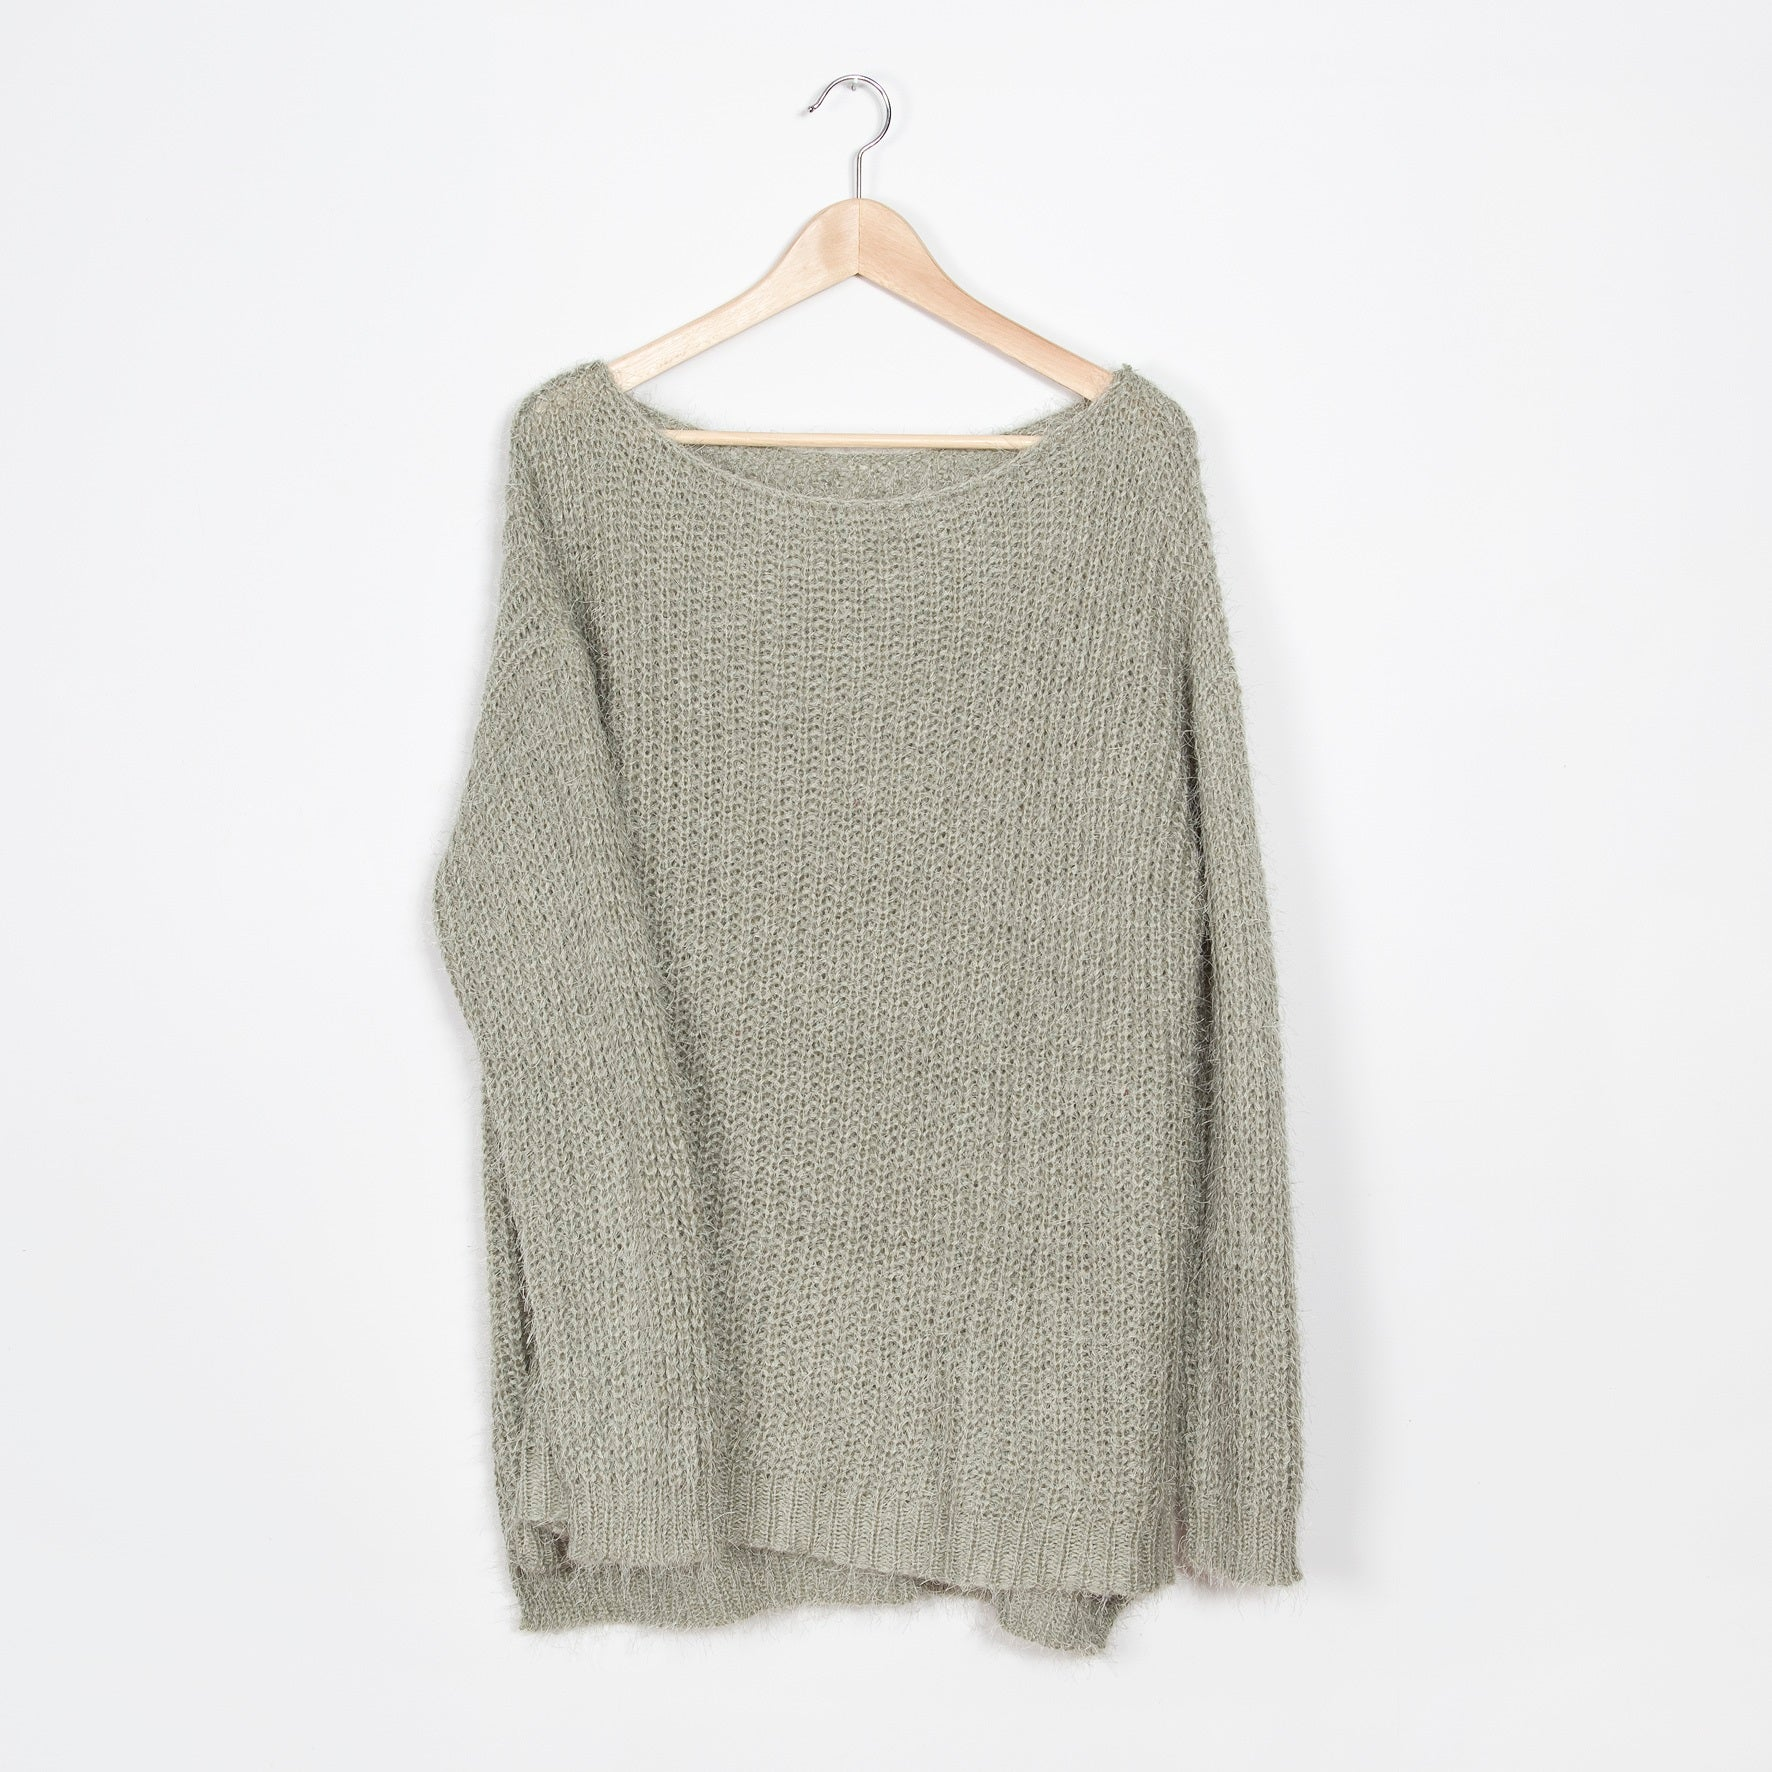 Thomas Sweater - Mint